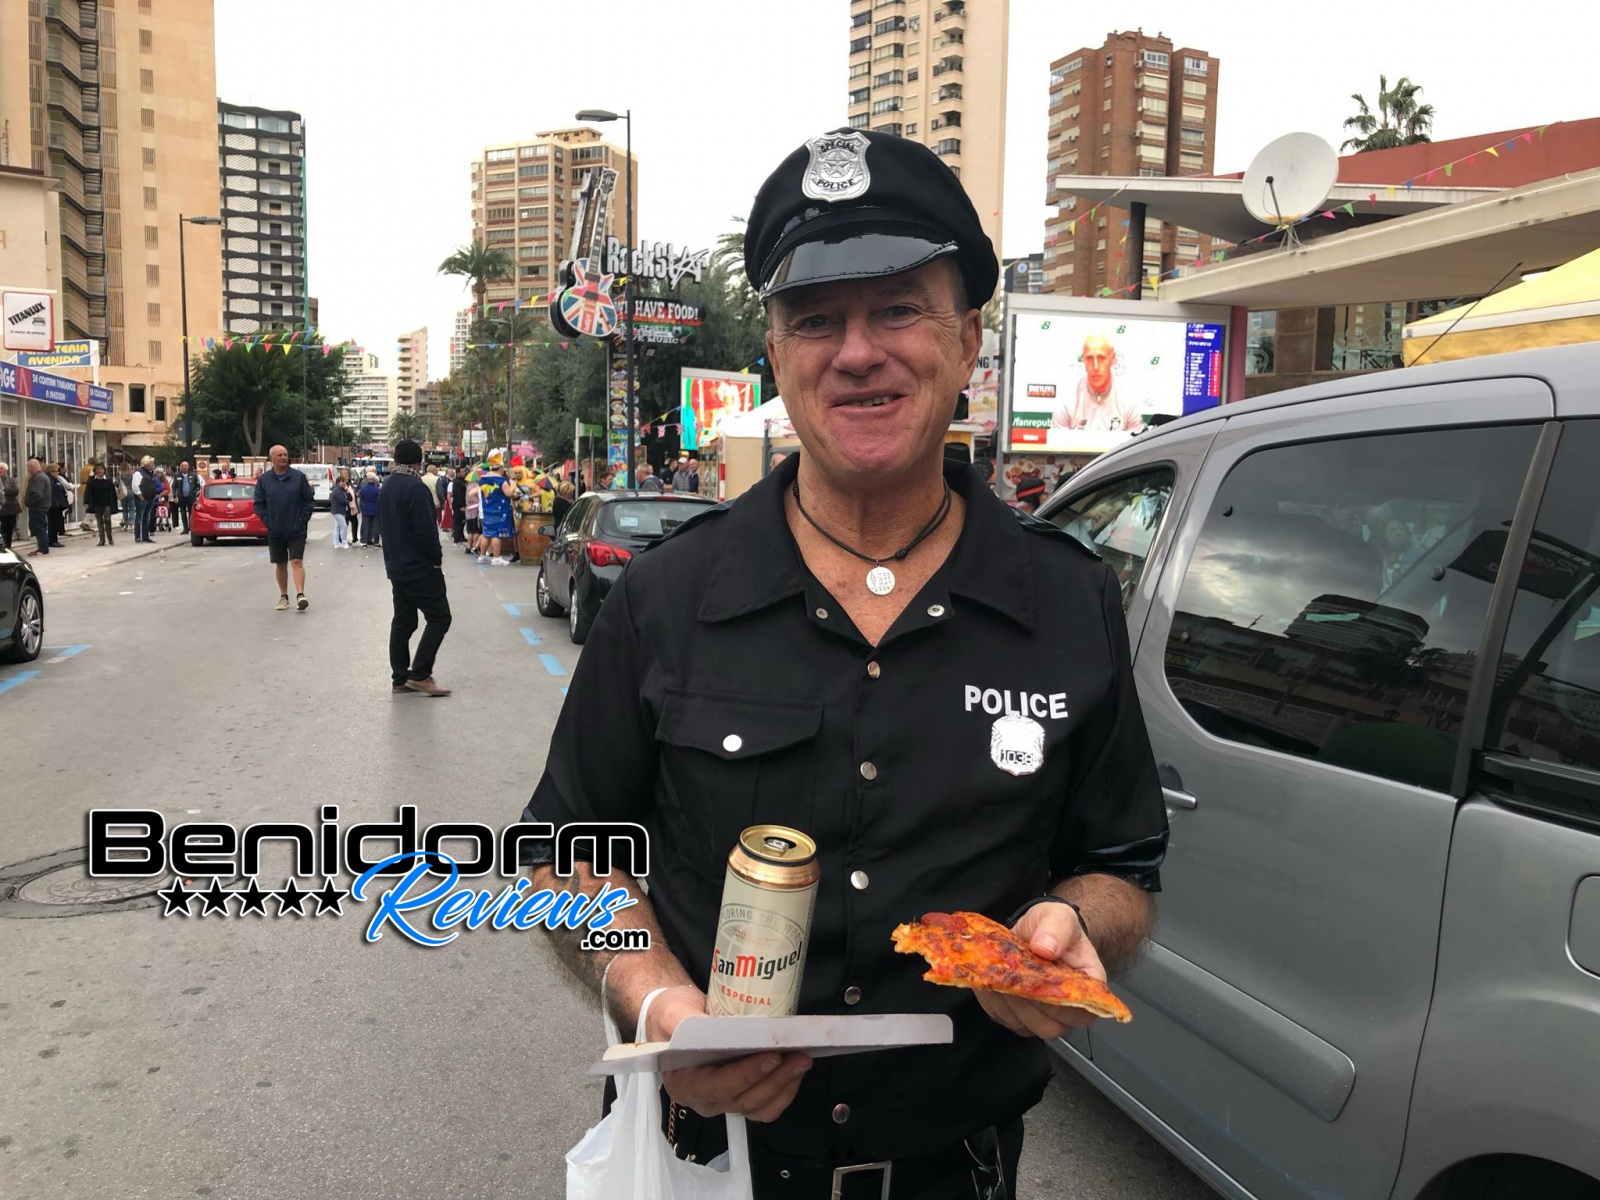 Benidorm-Fiestas-2019-Fancy-Dress-155